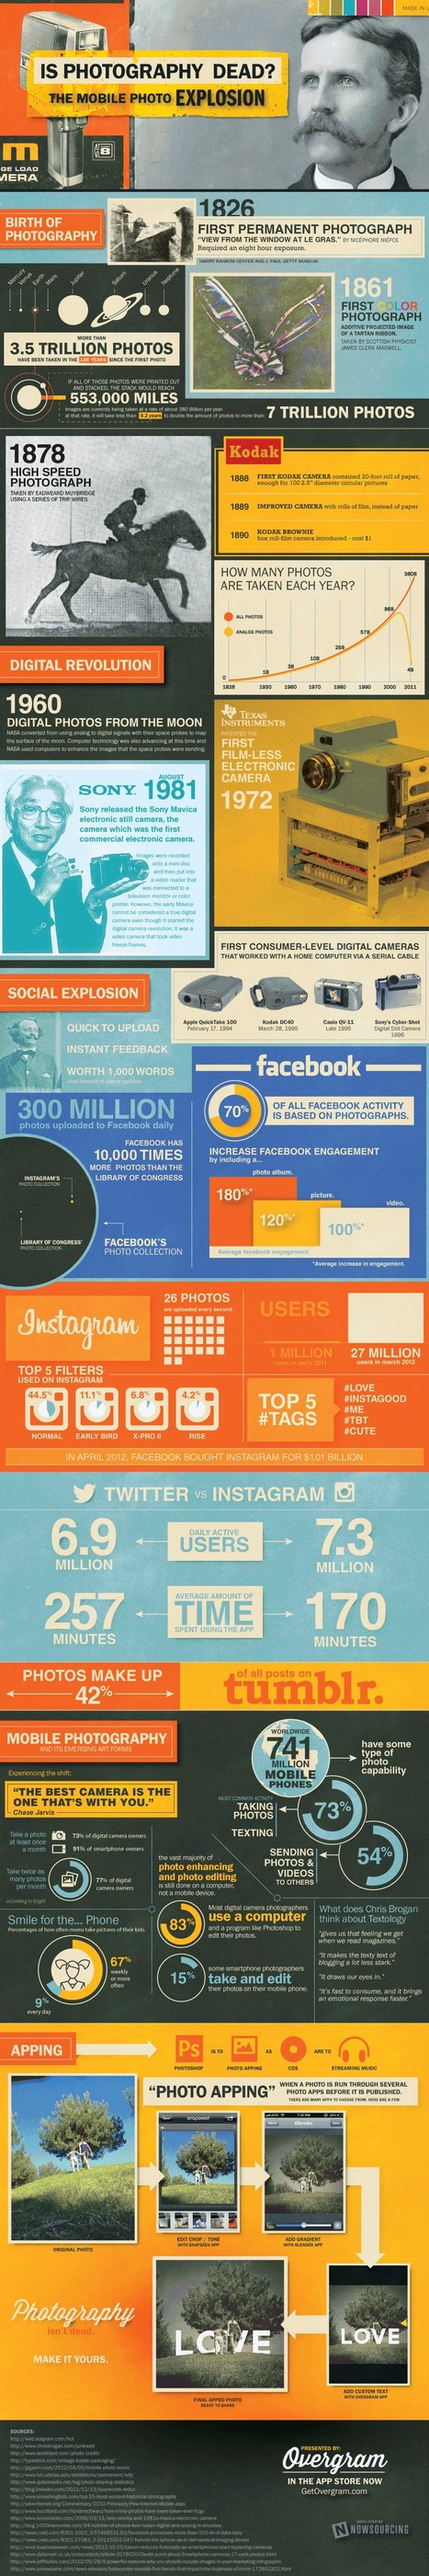 The Mobile Social Photo Explosion [INFOGRAPHIC] | The Information Professional | Scoop.it